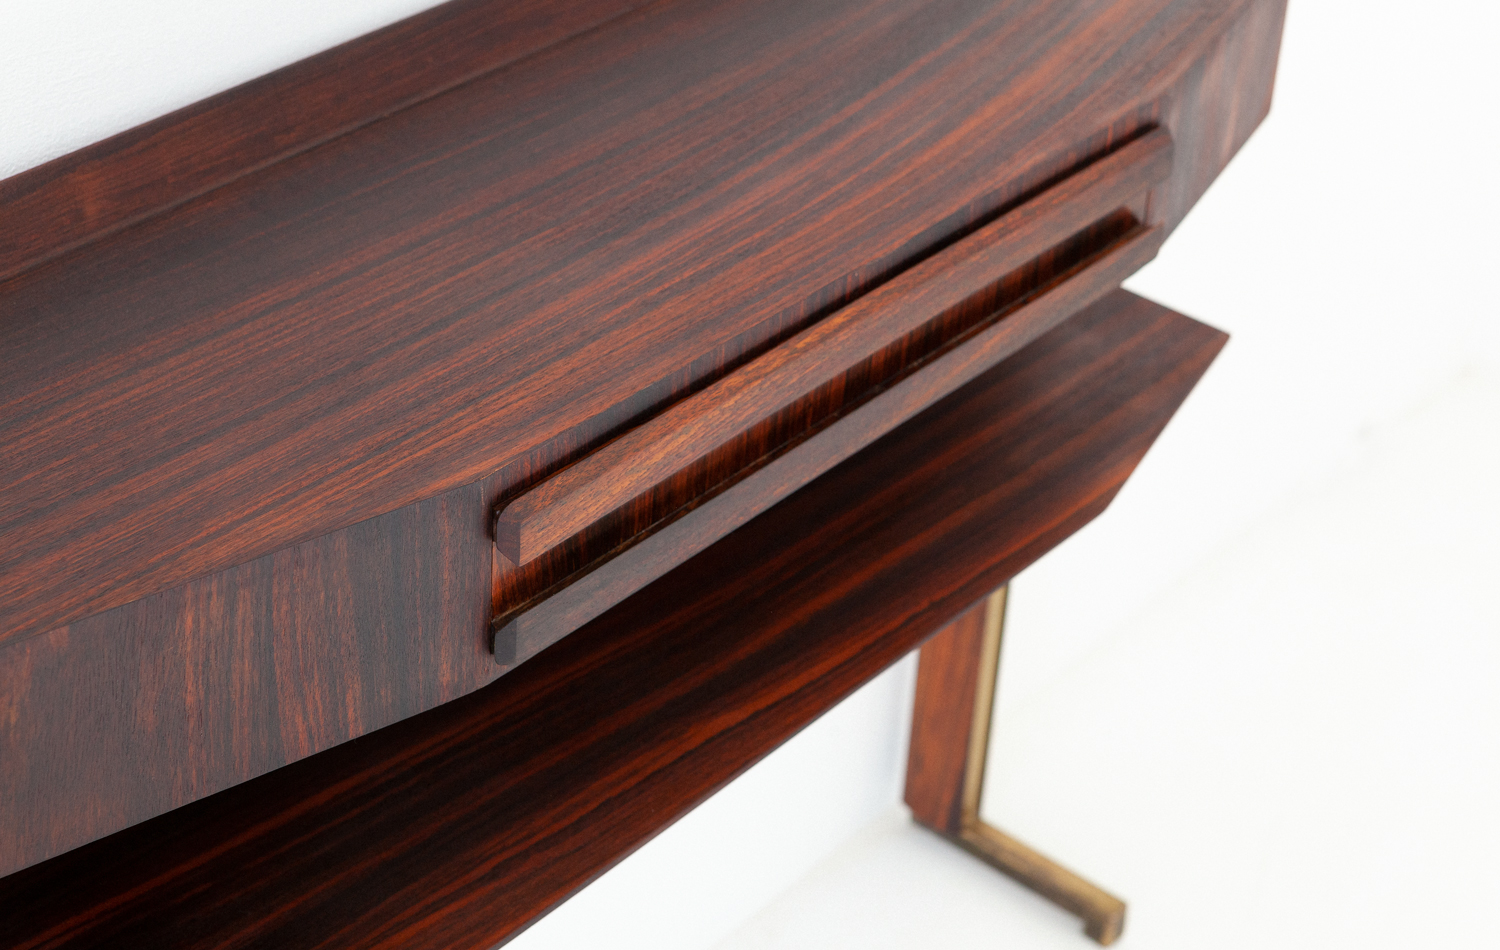 OF85-retro4m-1950s-italian-rosewood-brass-console-table-5